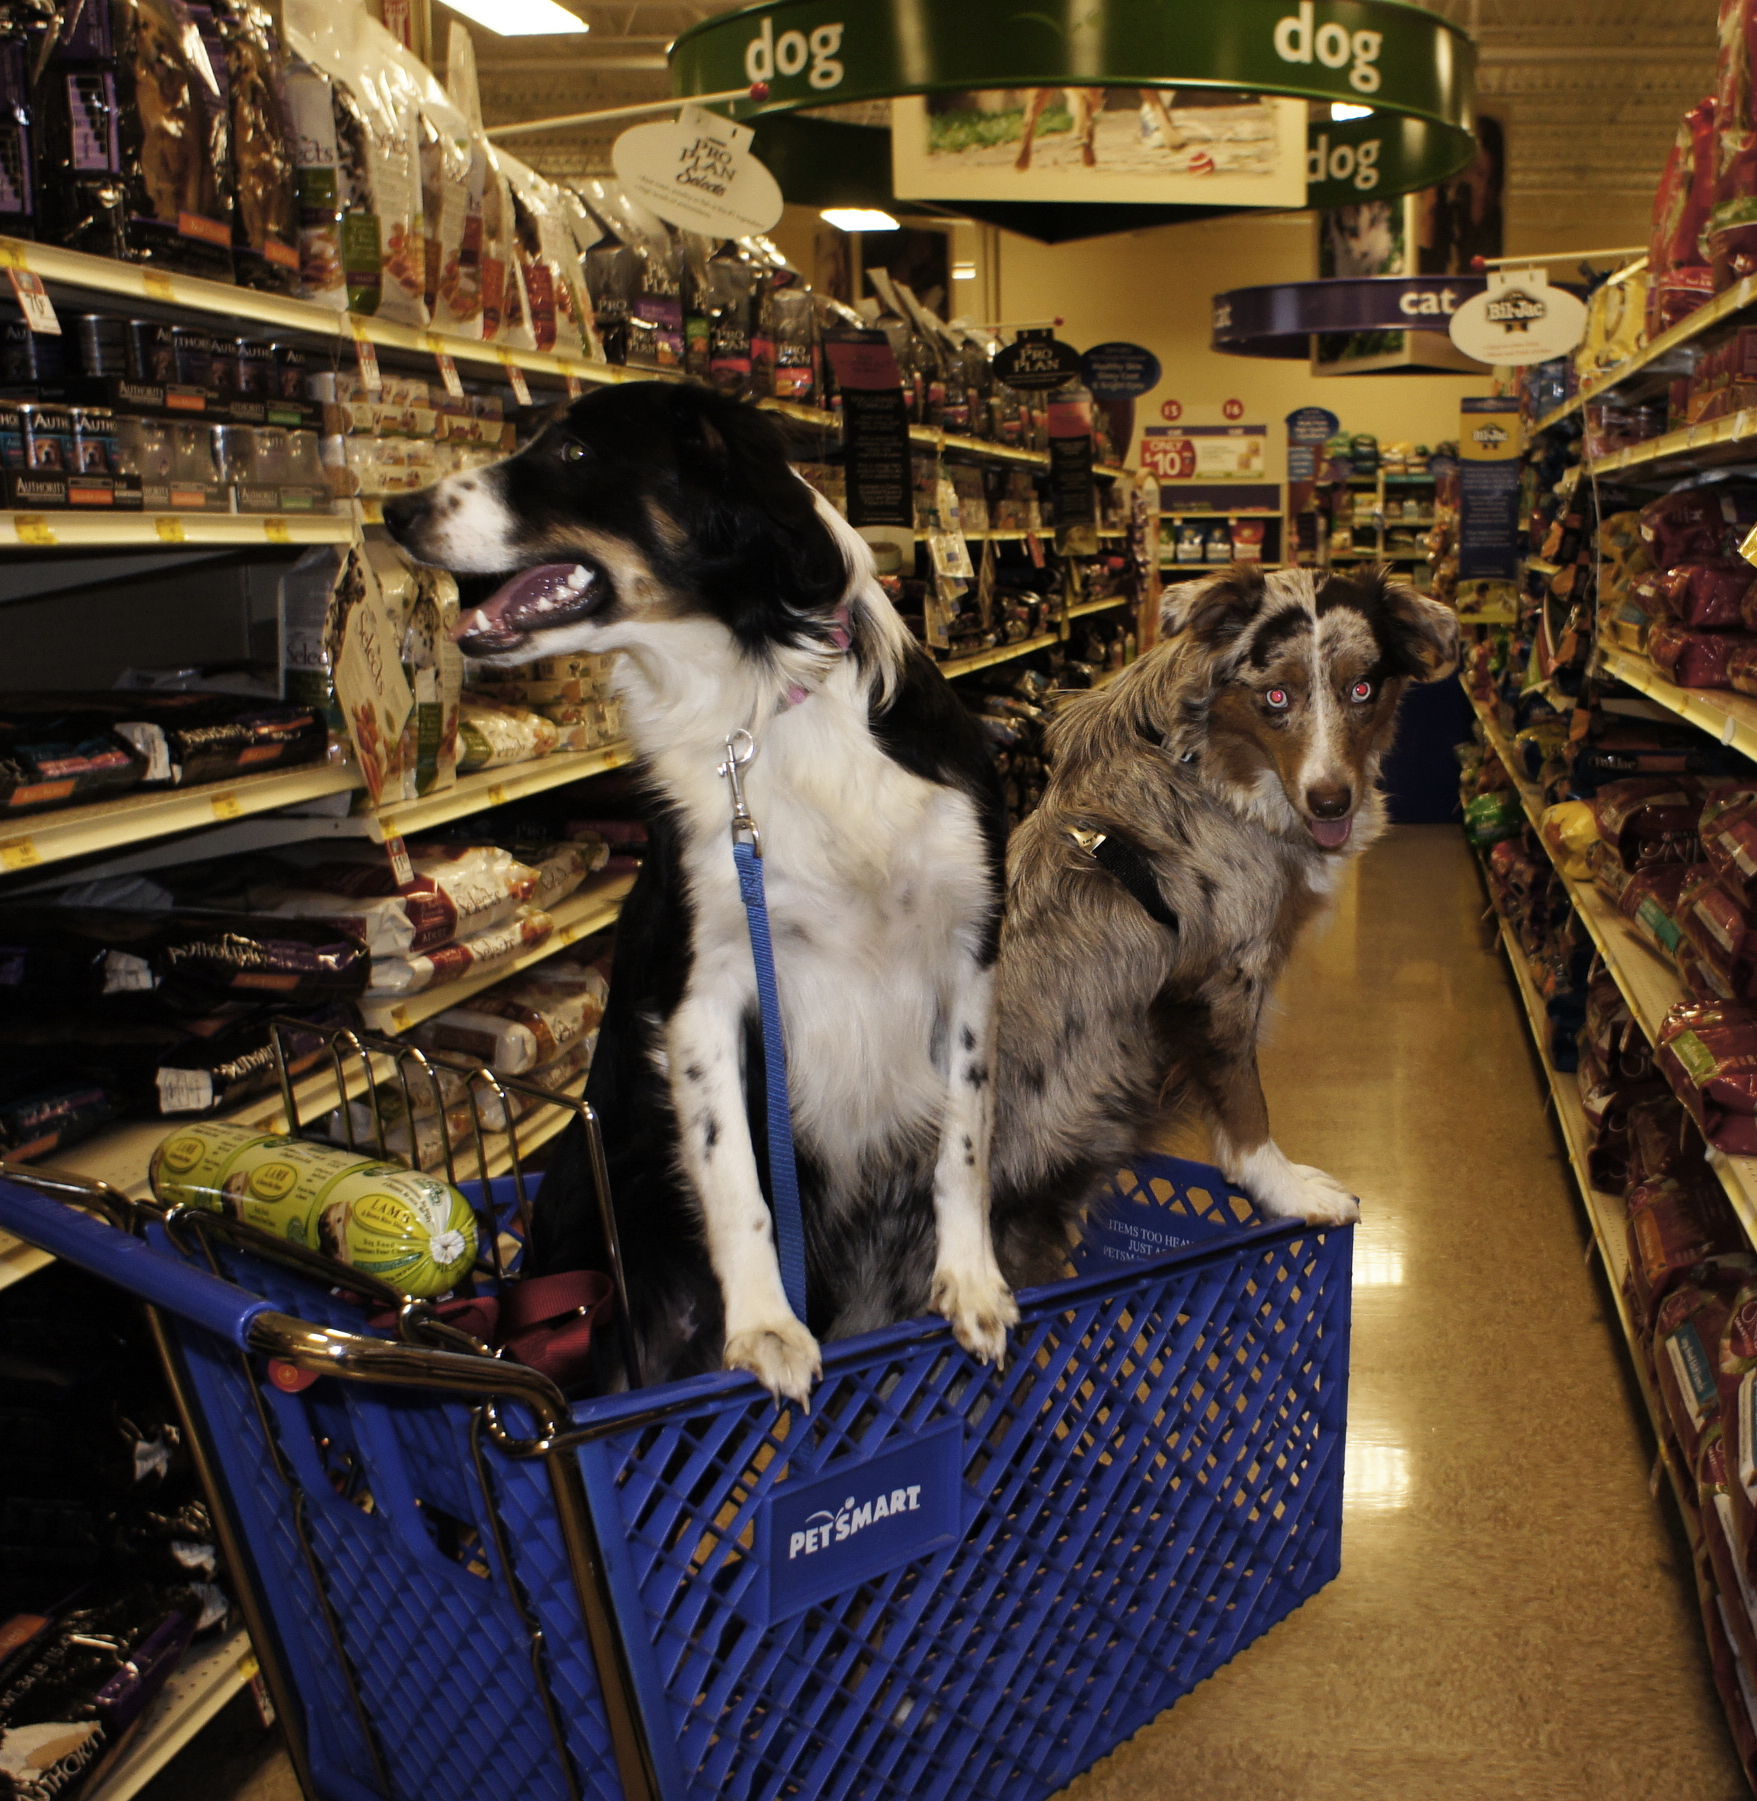 A photograph shows 2 dogs riding in a shopping cart inside of a Pet smart store.